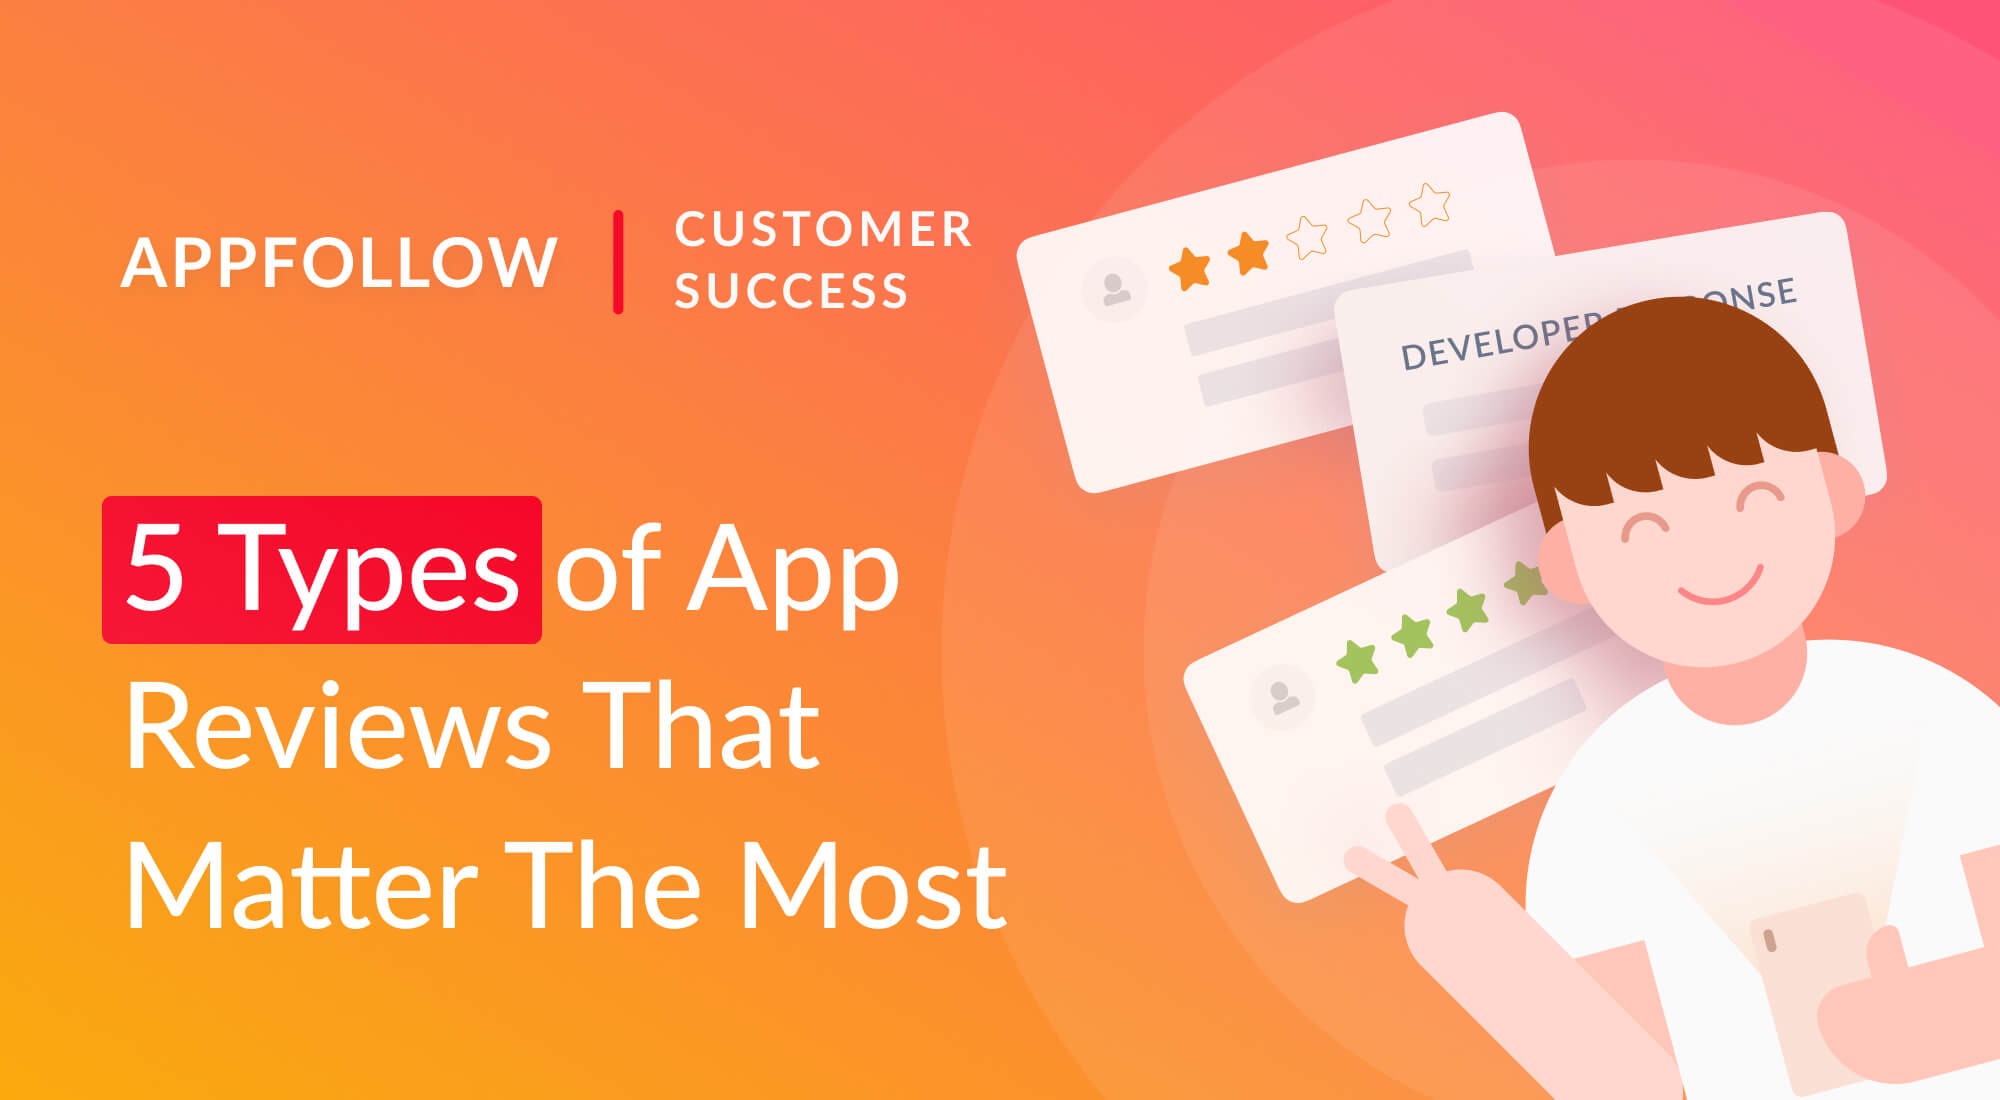 5 Types of App Reviews To Watch Out For